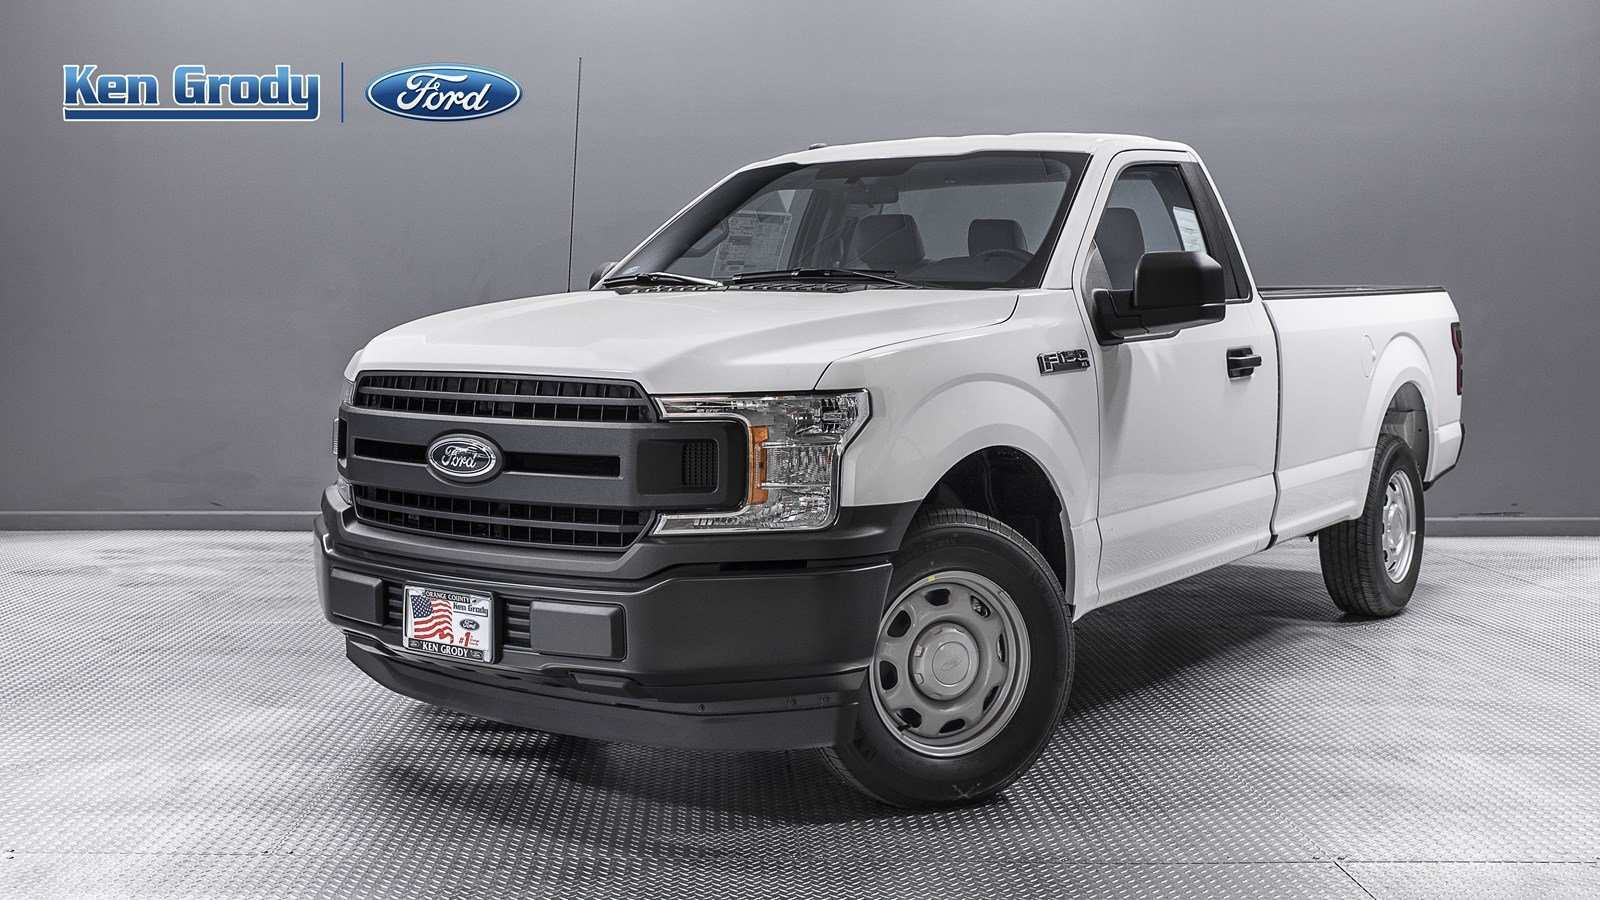 71 The Best 2019 Ford F 150 Wallpaper